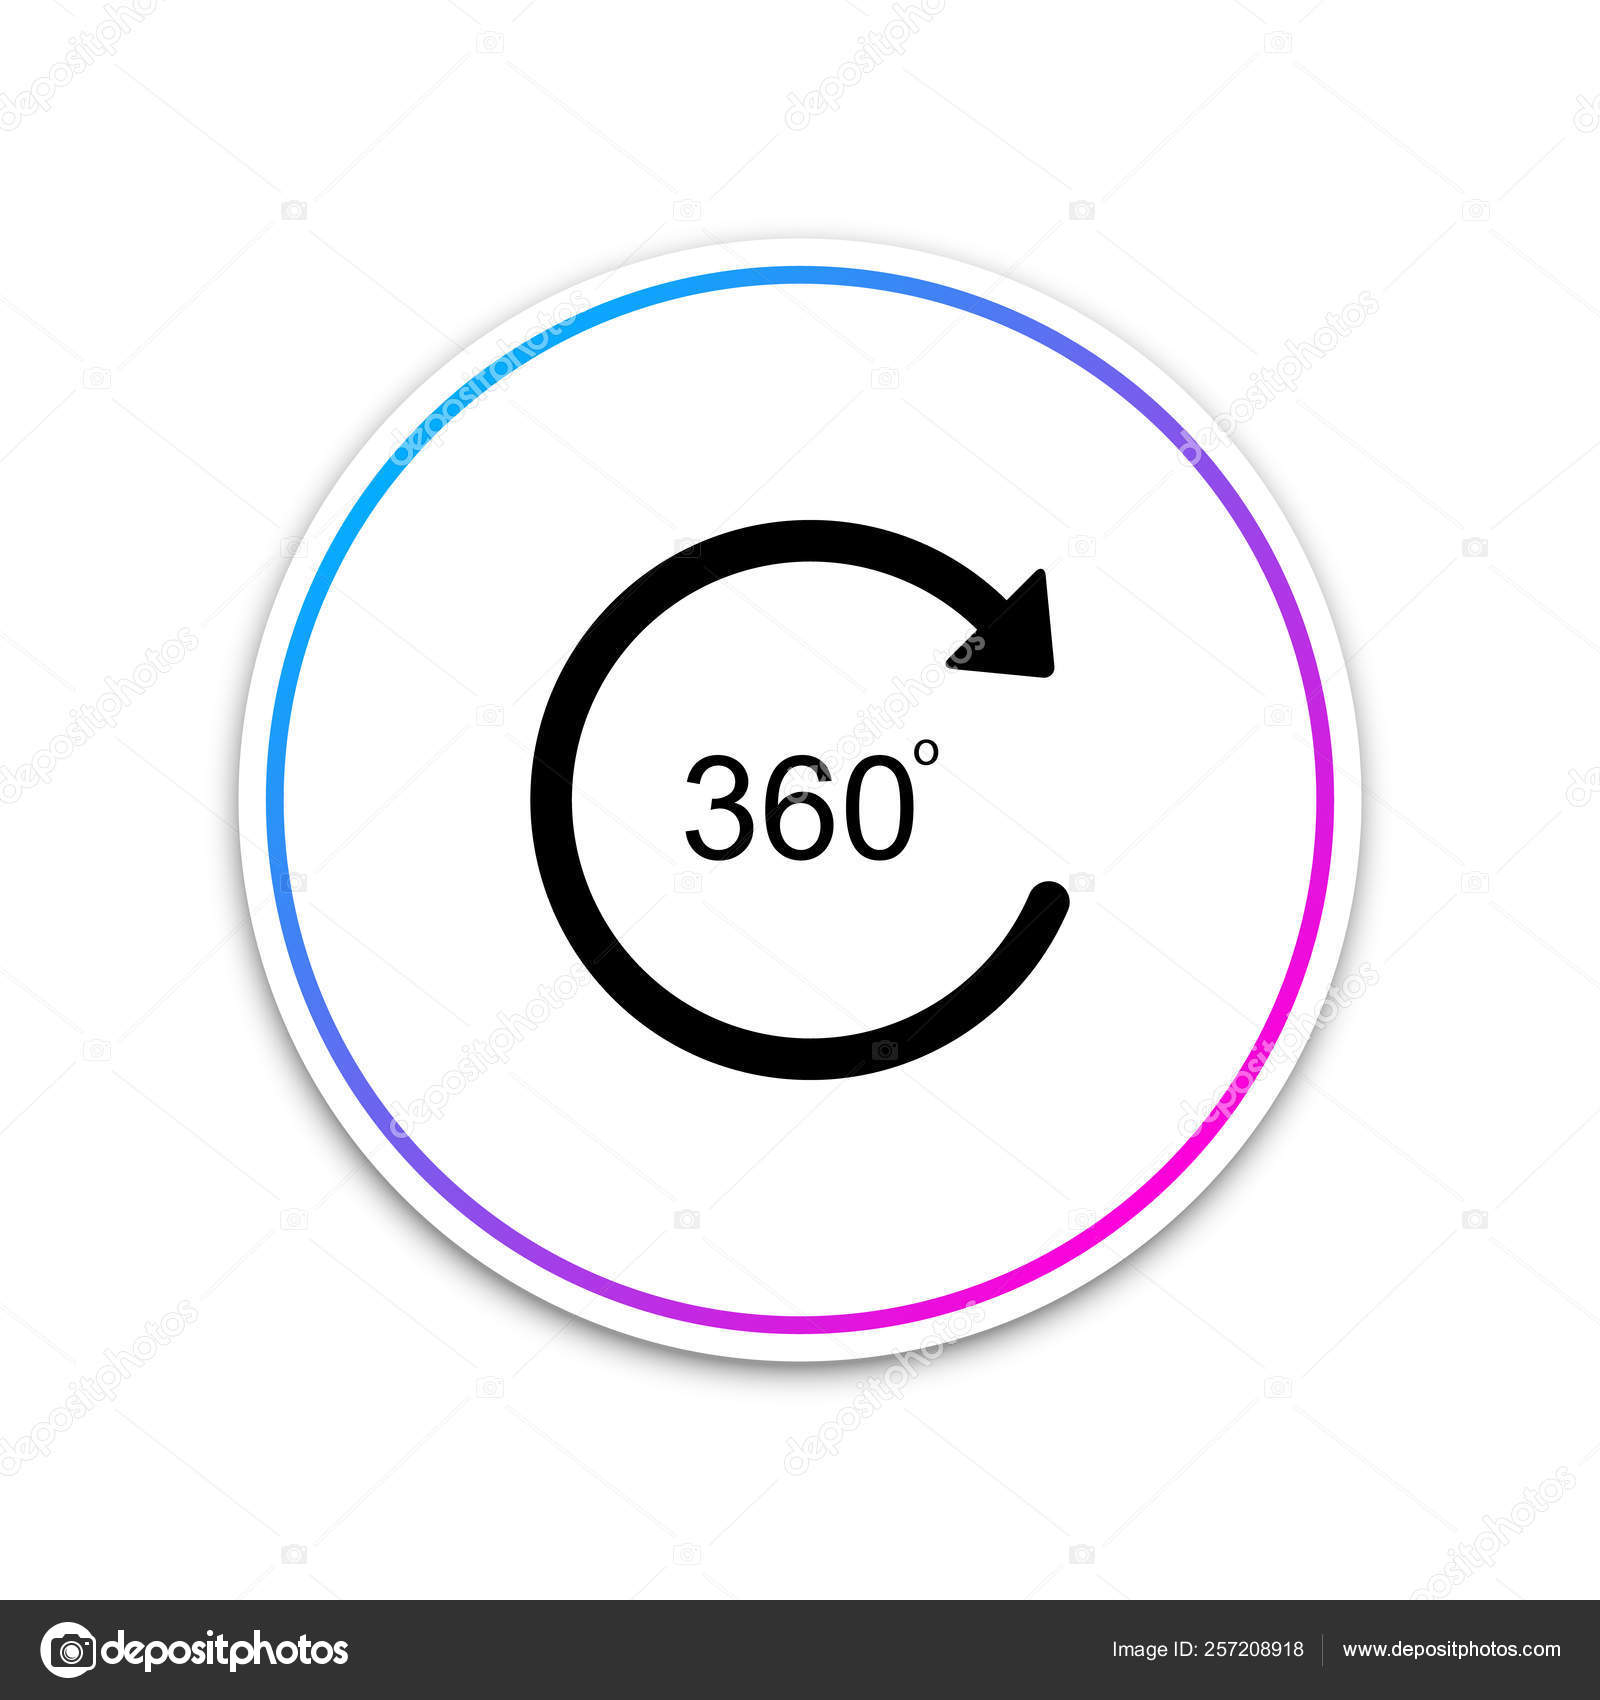 Angle 360 degrees icon isolated on white background